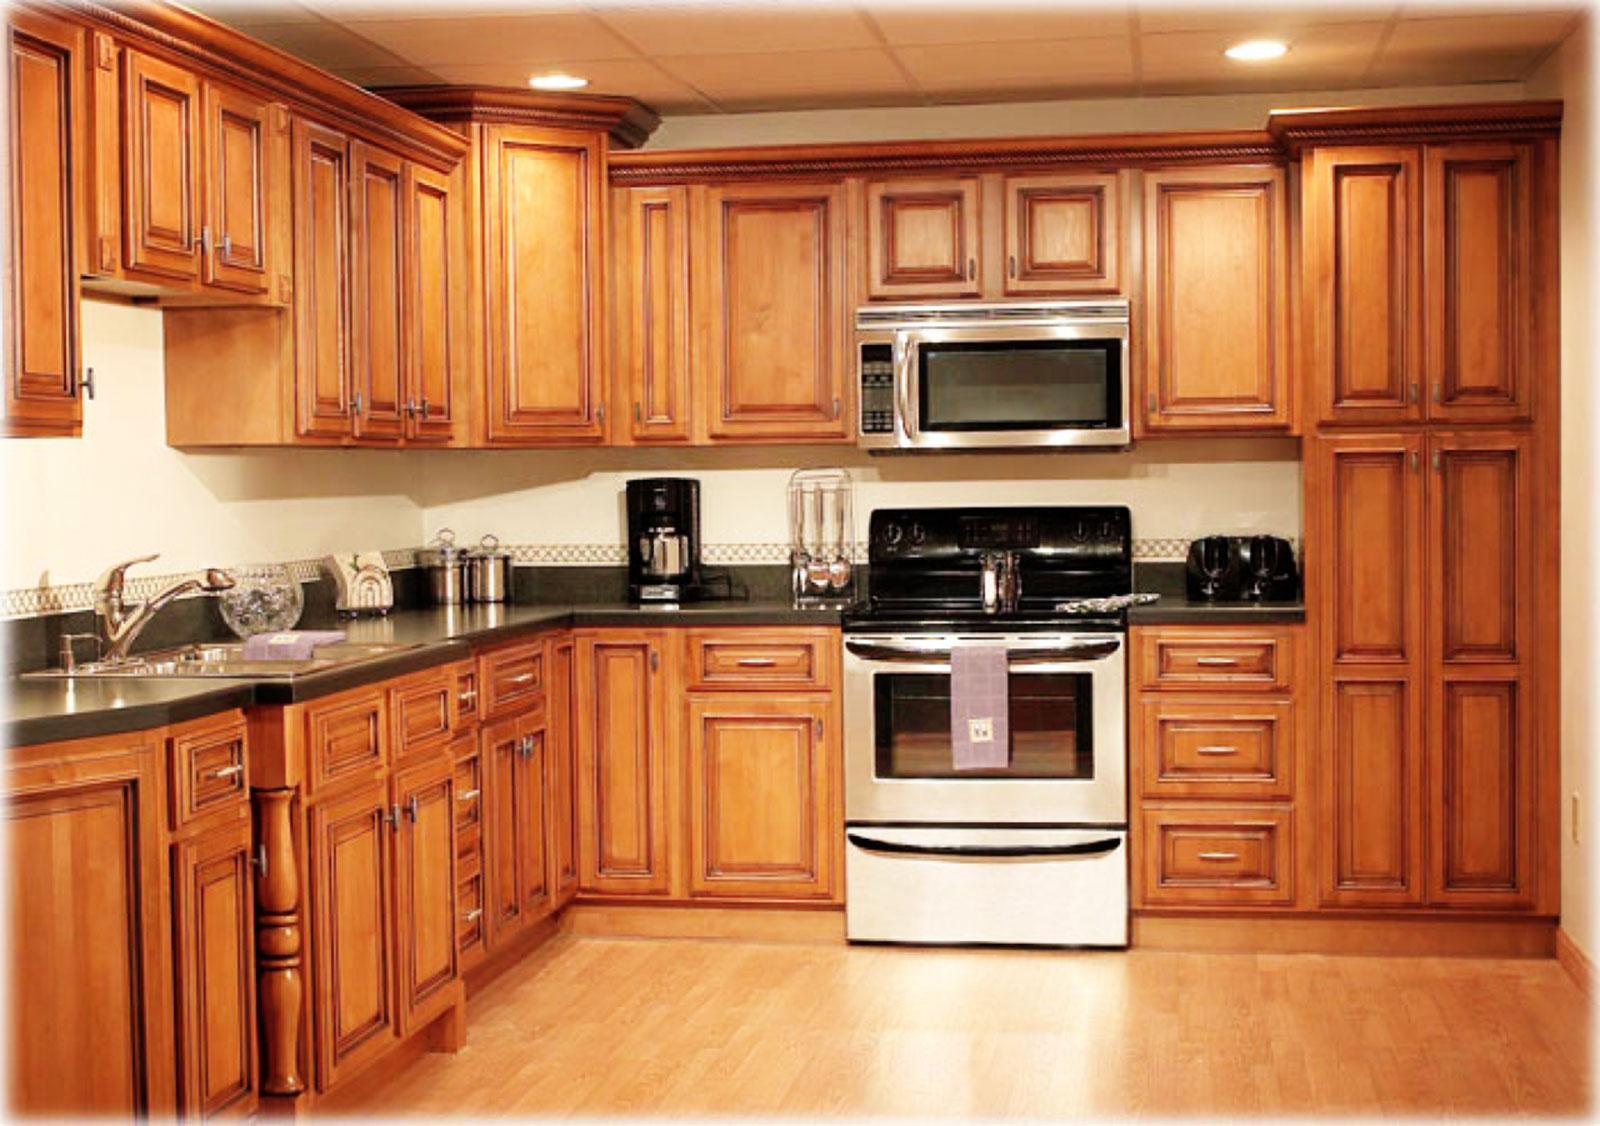 Cabinets Ideas Kitchen Top 12 Images Designs For Rustic Kitchen Cabinet Home